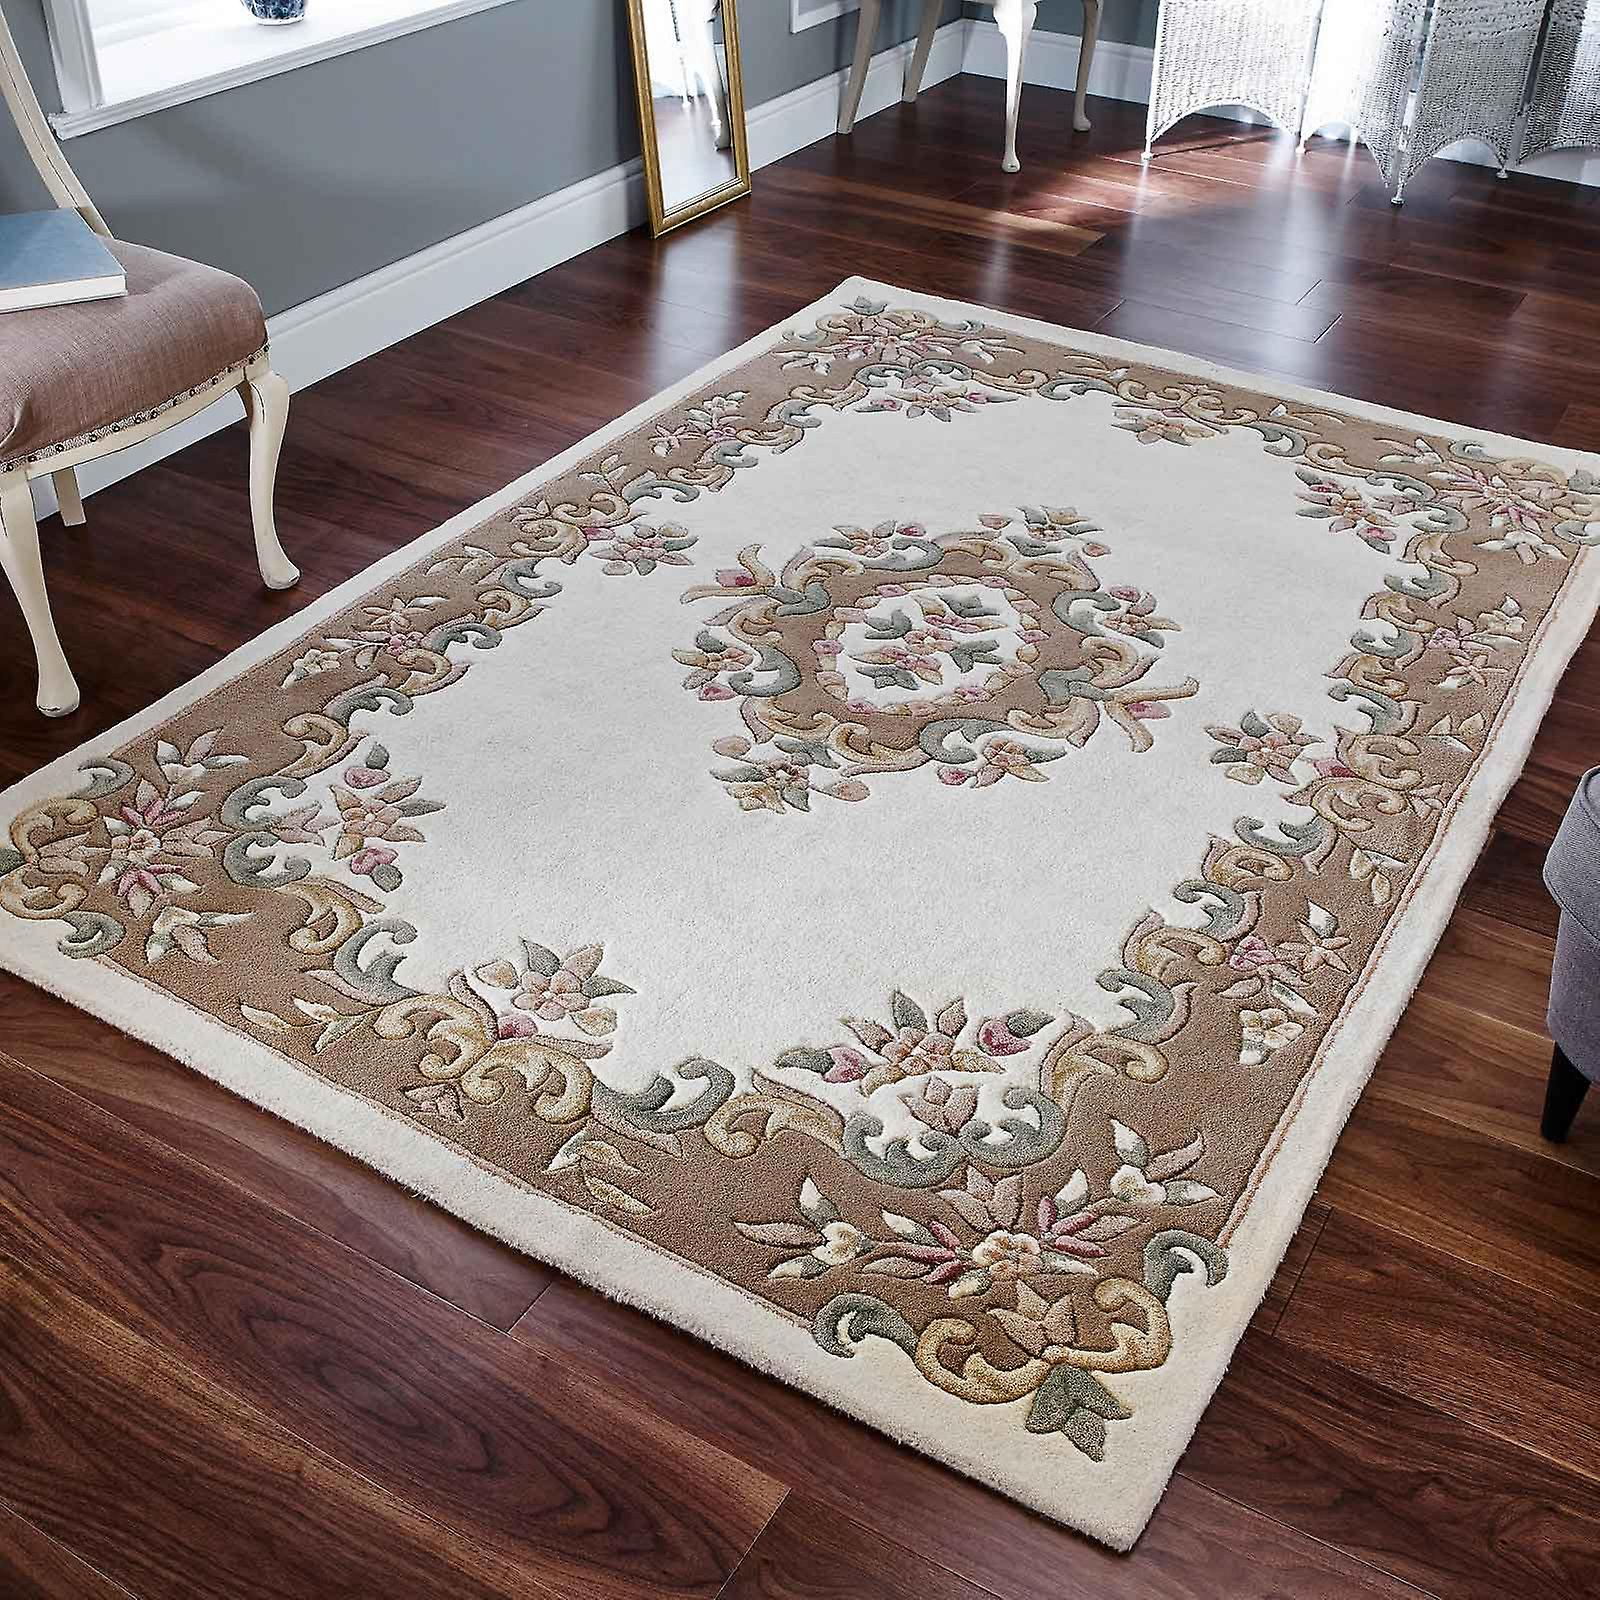 Tappeti di lana Royal Aubusson In crema Beige